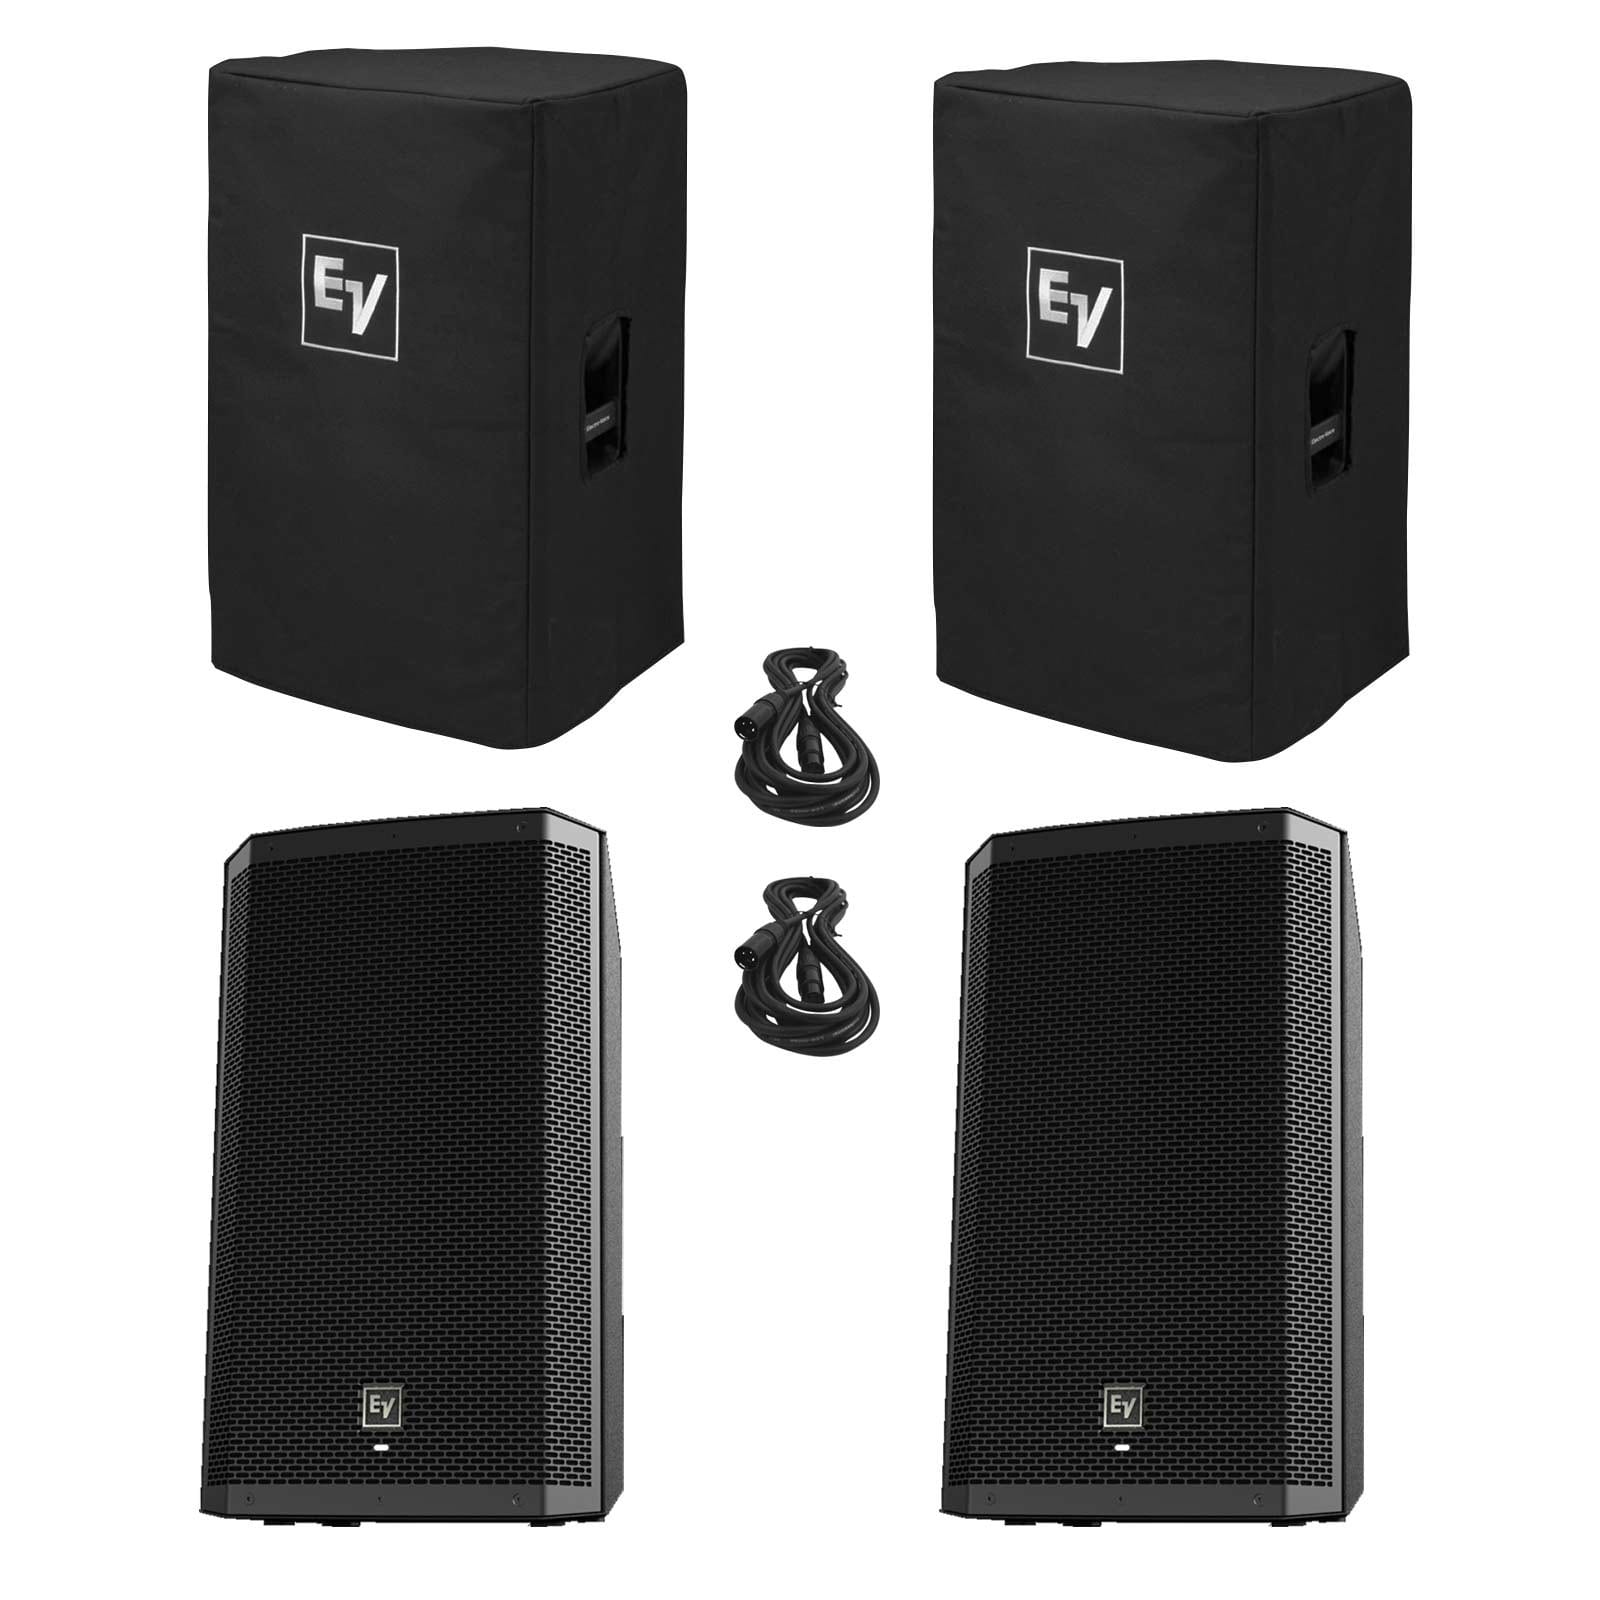 2-electro-voice-zlx-12p-12-powered-pa-loudspeakers-packaged-with-protective-speaker-covers-633